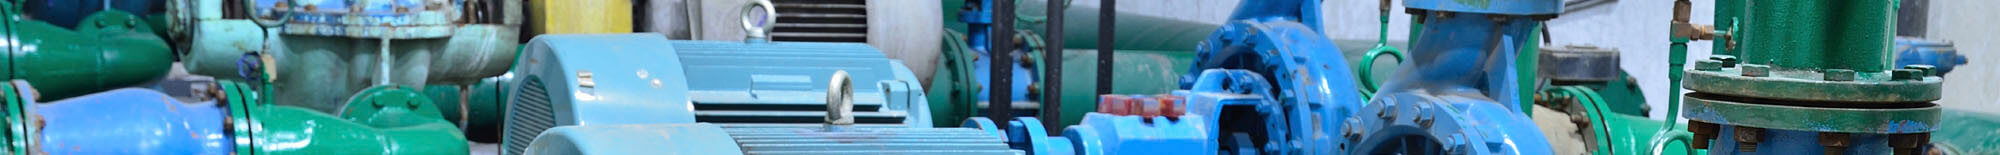 High Pressure Pumps | Industrial Pump Repair & Service